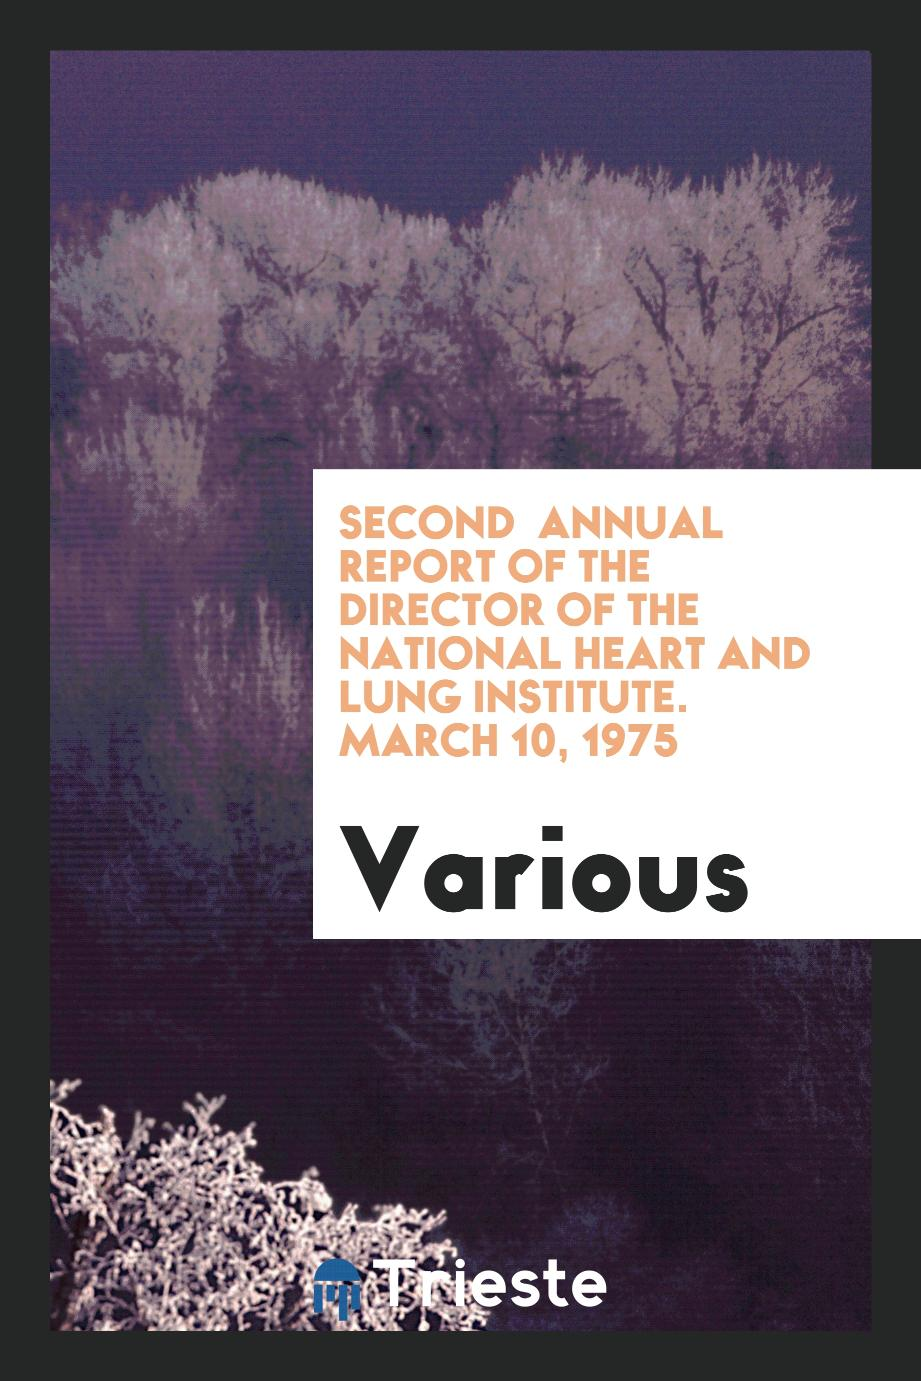 Second annual report of the director of the National Heart and Lung Institute. March 10, 1975